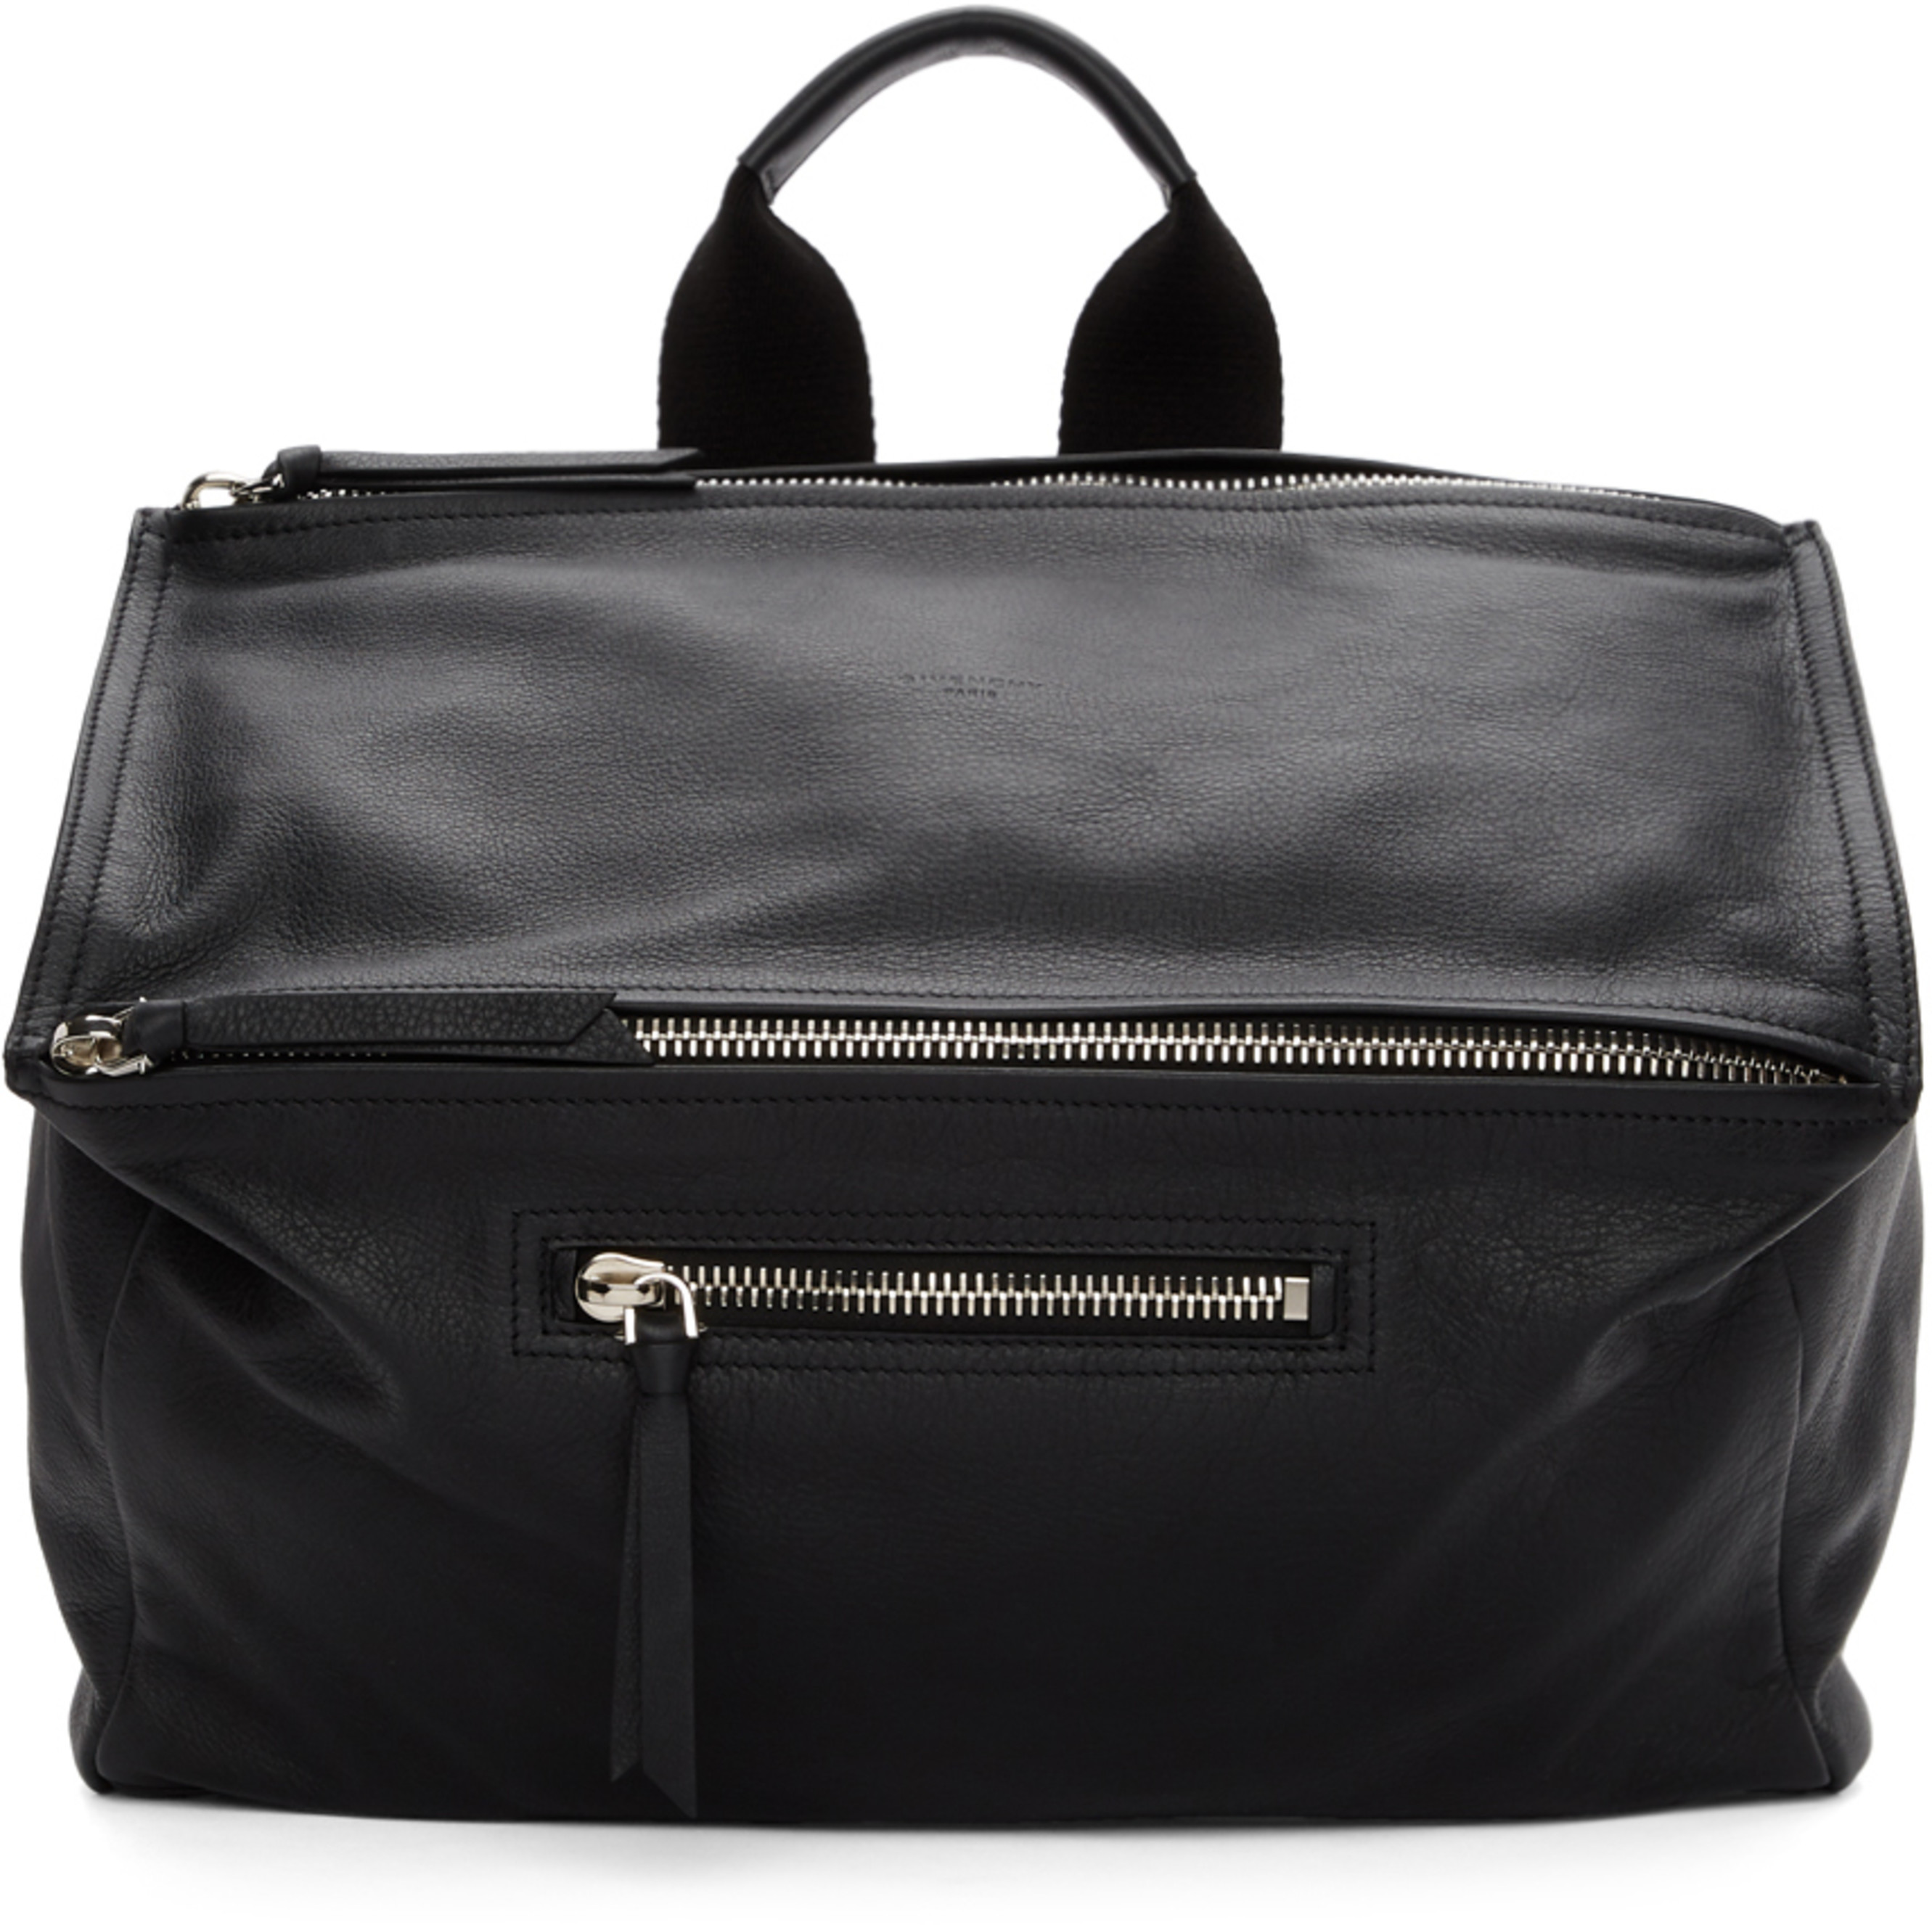 ac3c7dab10 Givenchy bags for Men